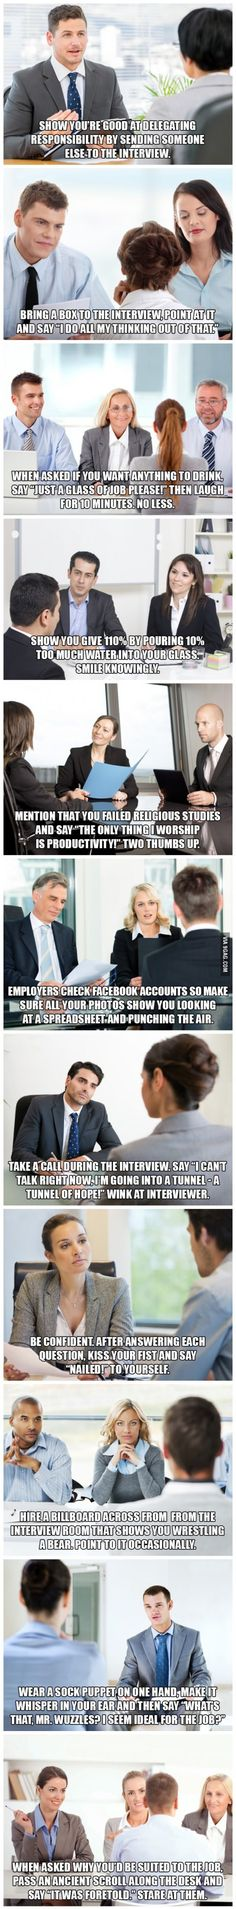 12 Tips to help you Succeed at Job Interviews